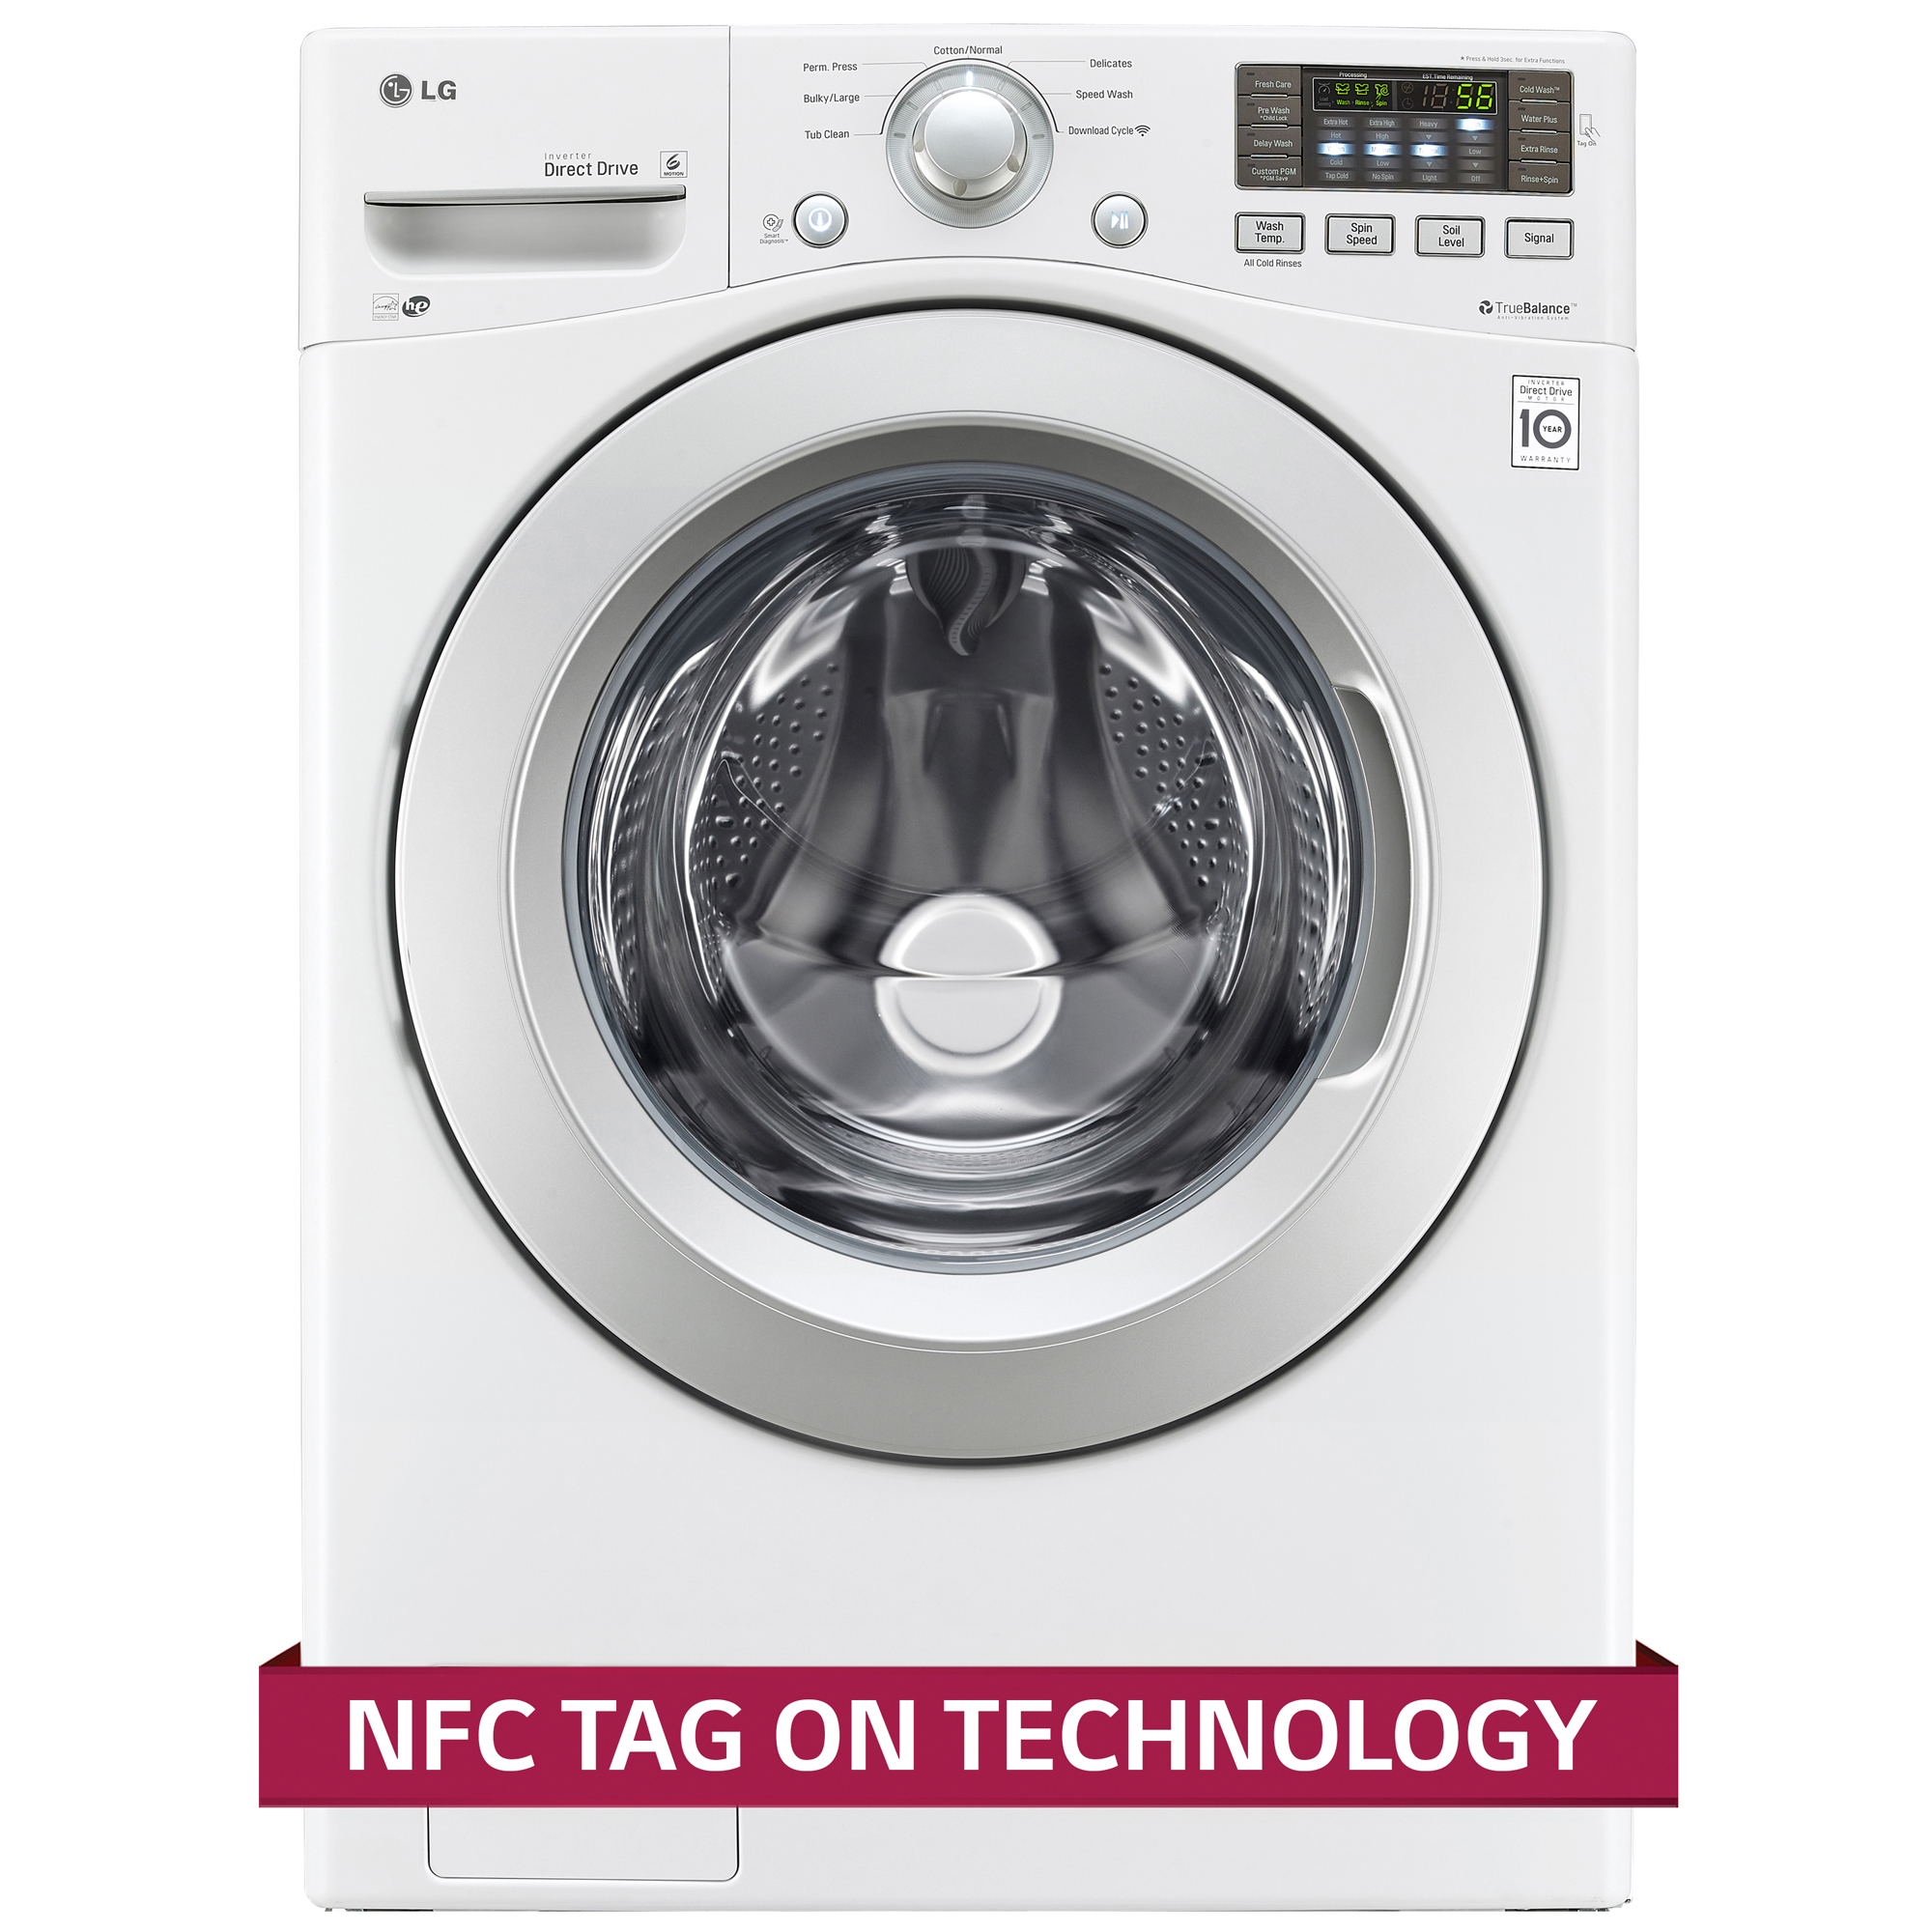 LG WM3170CW 4.3 cu. ft. Capacity Front Load Washer w/ NFC Tag On Technology – White